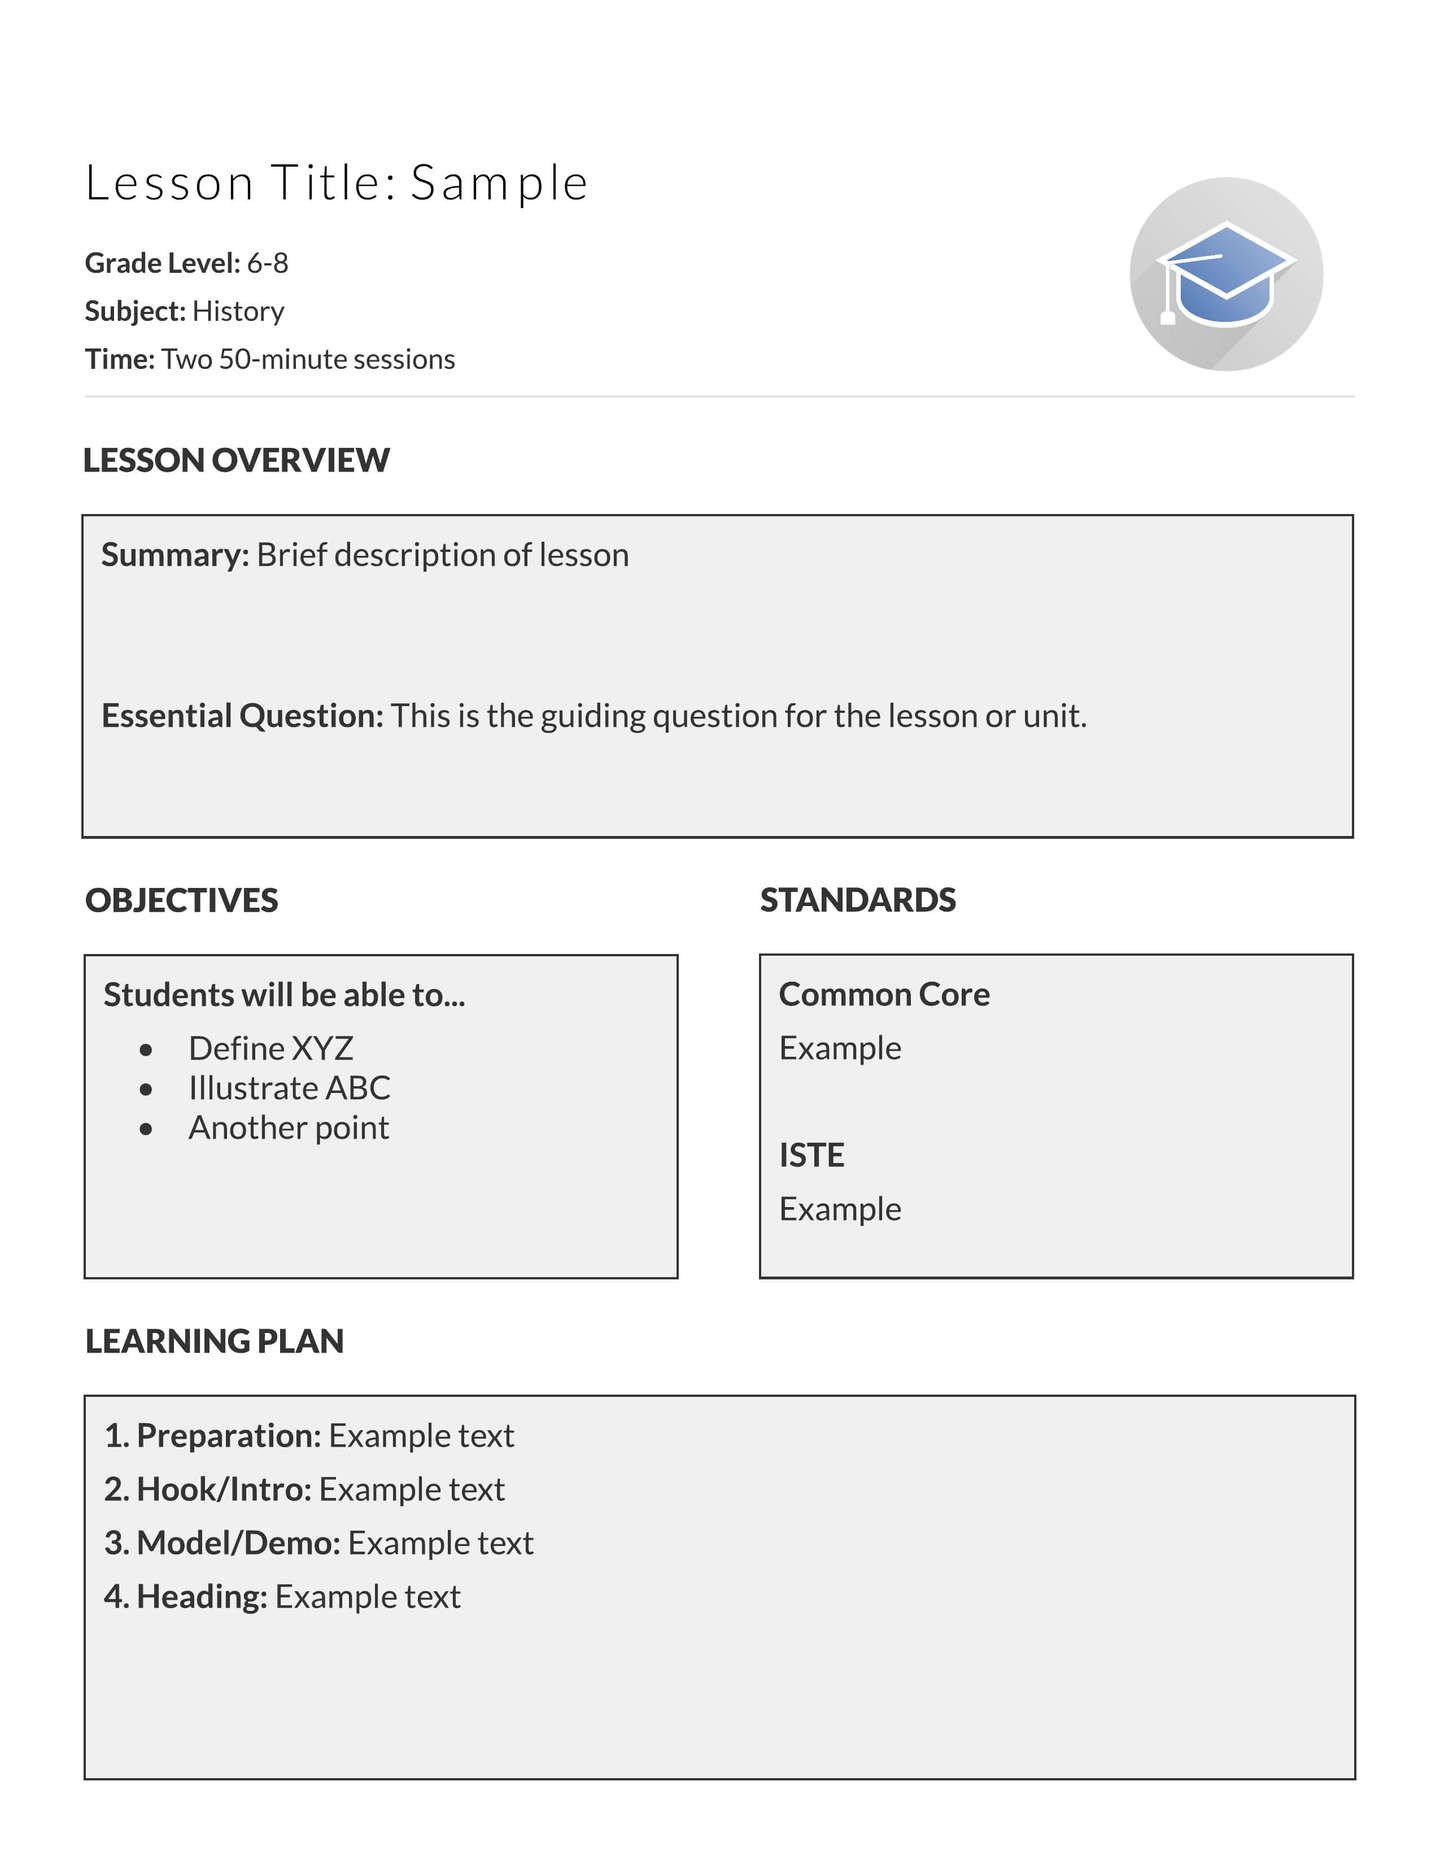 Lesson Plan Templates Free 5 Free Lesson Plan Templates & Examples Lucidpress